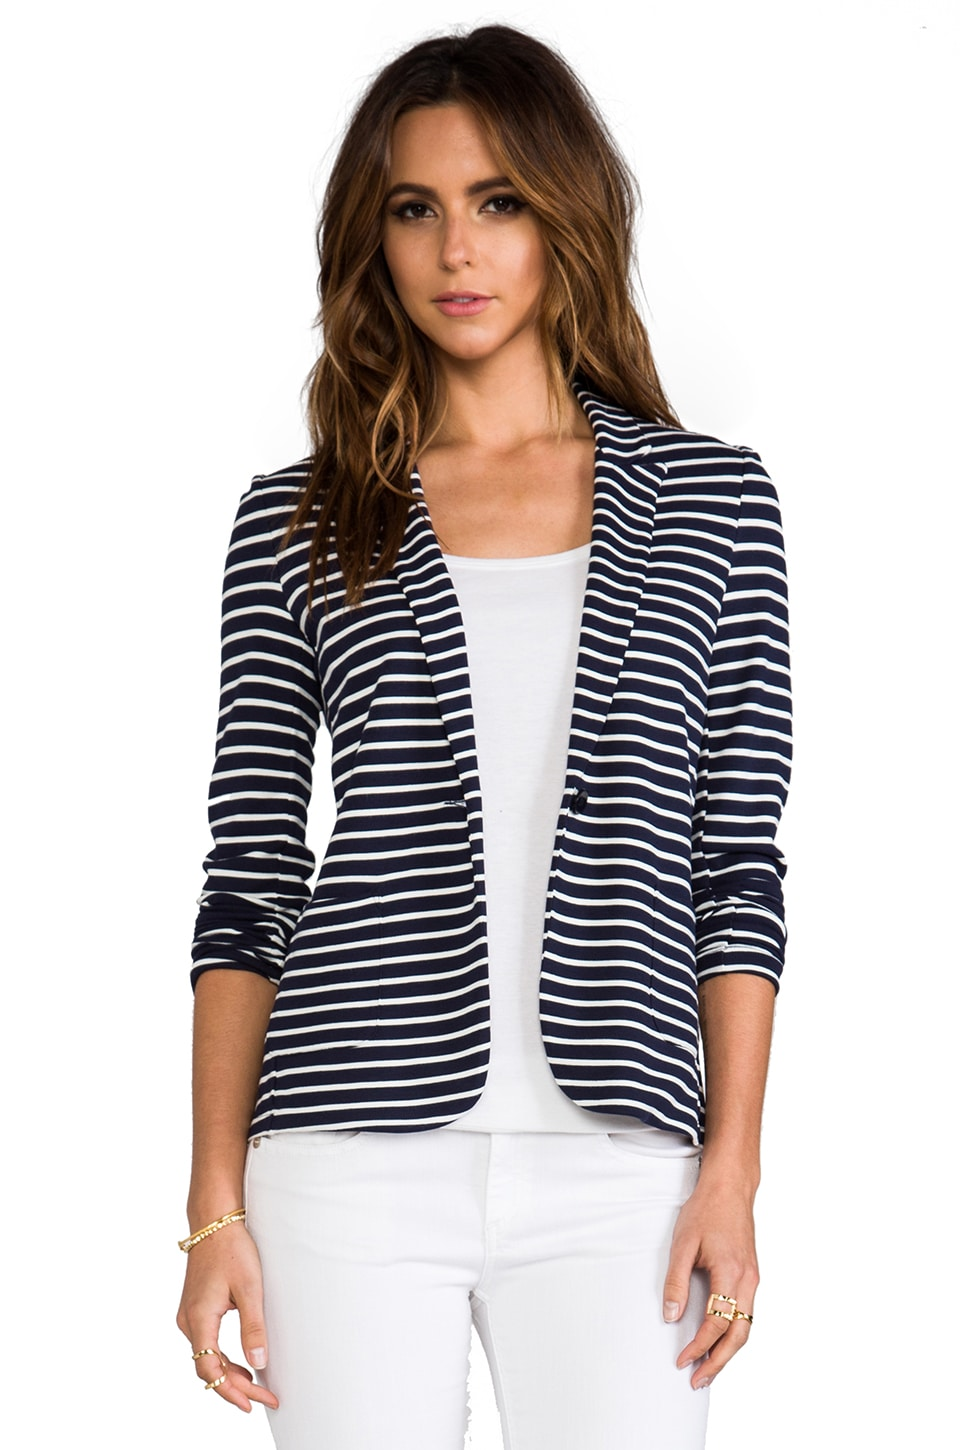 Velvet by Graham & Spencer Velvet Ponti Stripes Electra Blazer in navy